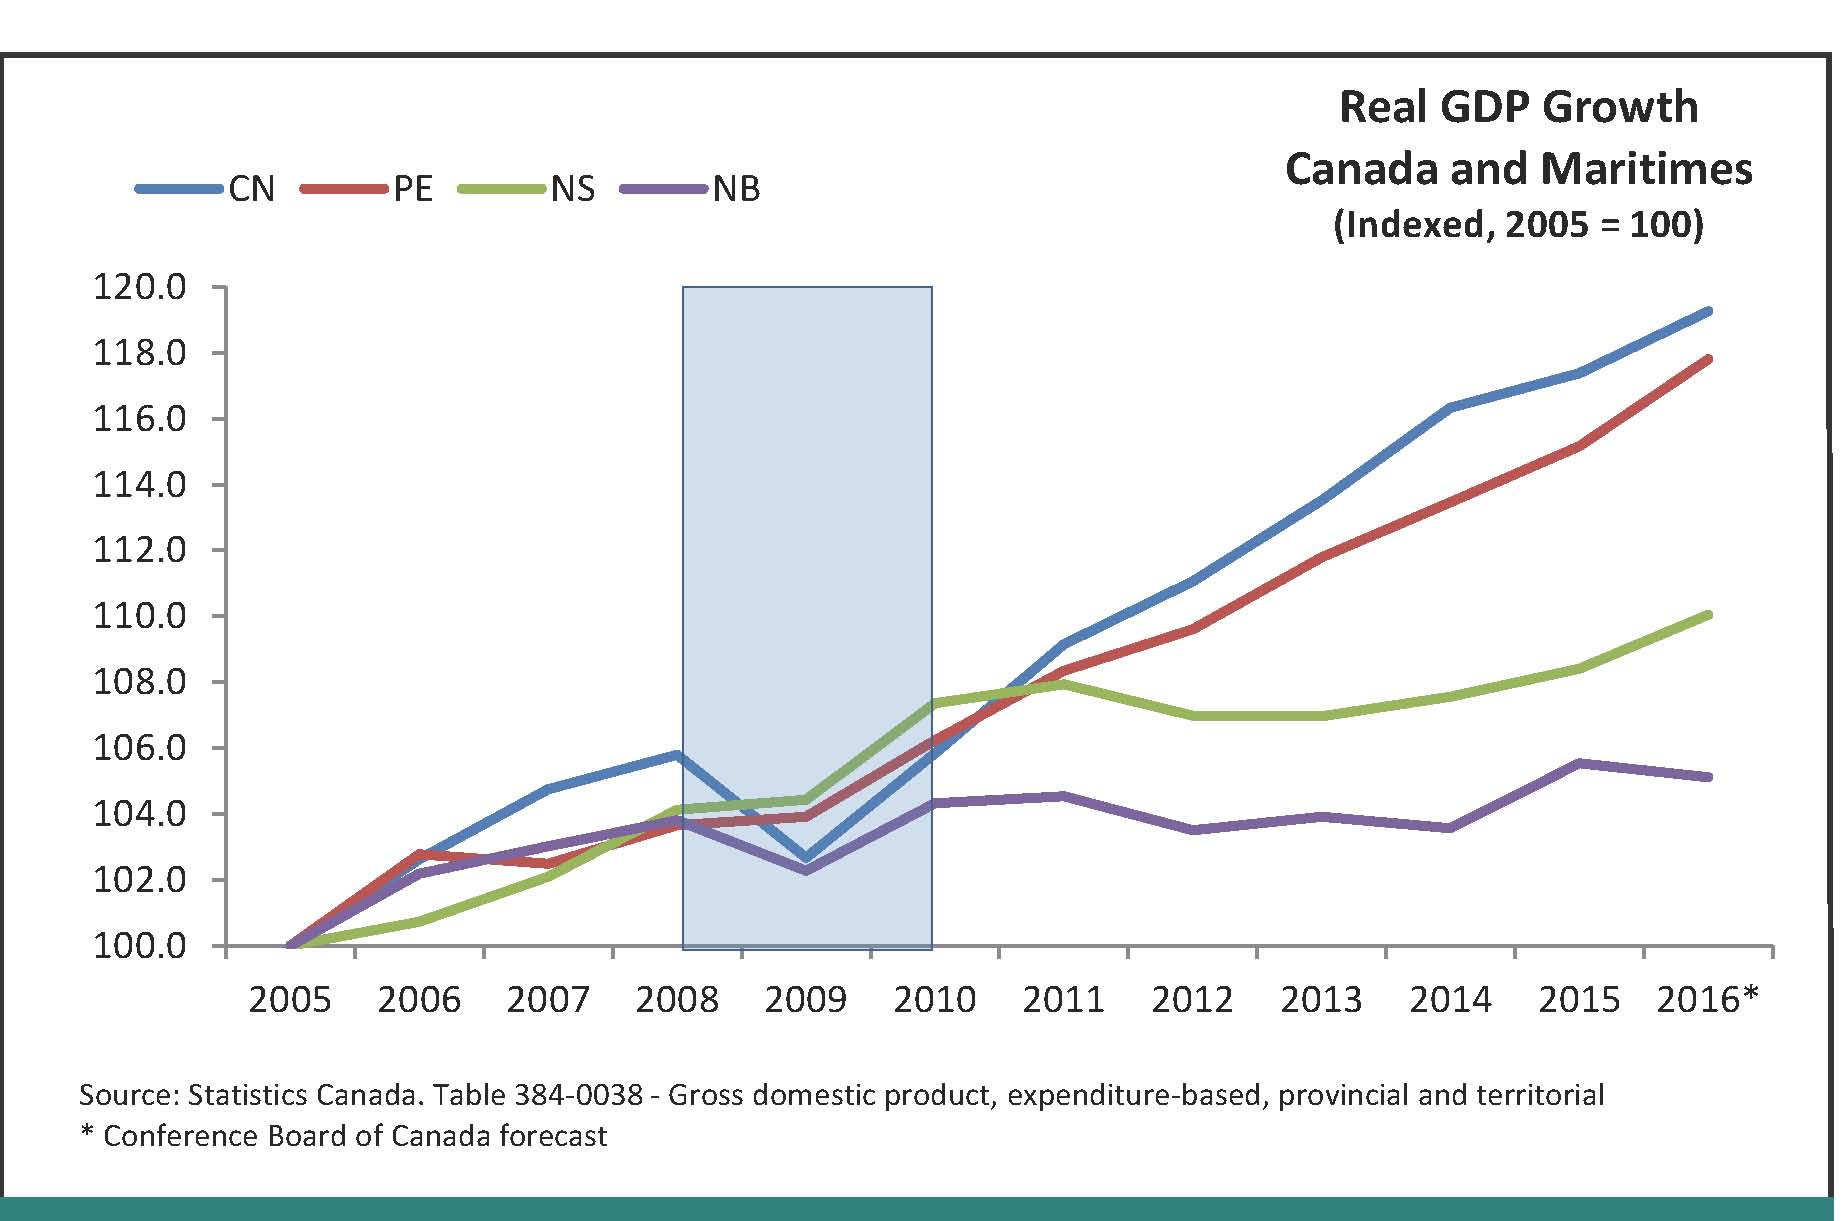 A line graph that illustrates real GDP growth for Canada and Maritimes (PEI, Nova Scotia and New Brunswick) from 2005 and forecasted to 2016. It shows the province leading the maritimes from 2011 to 2016.